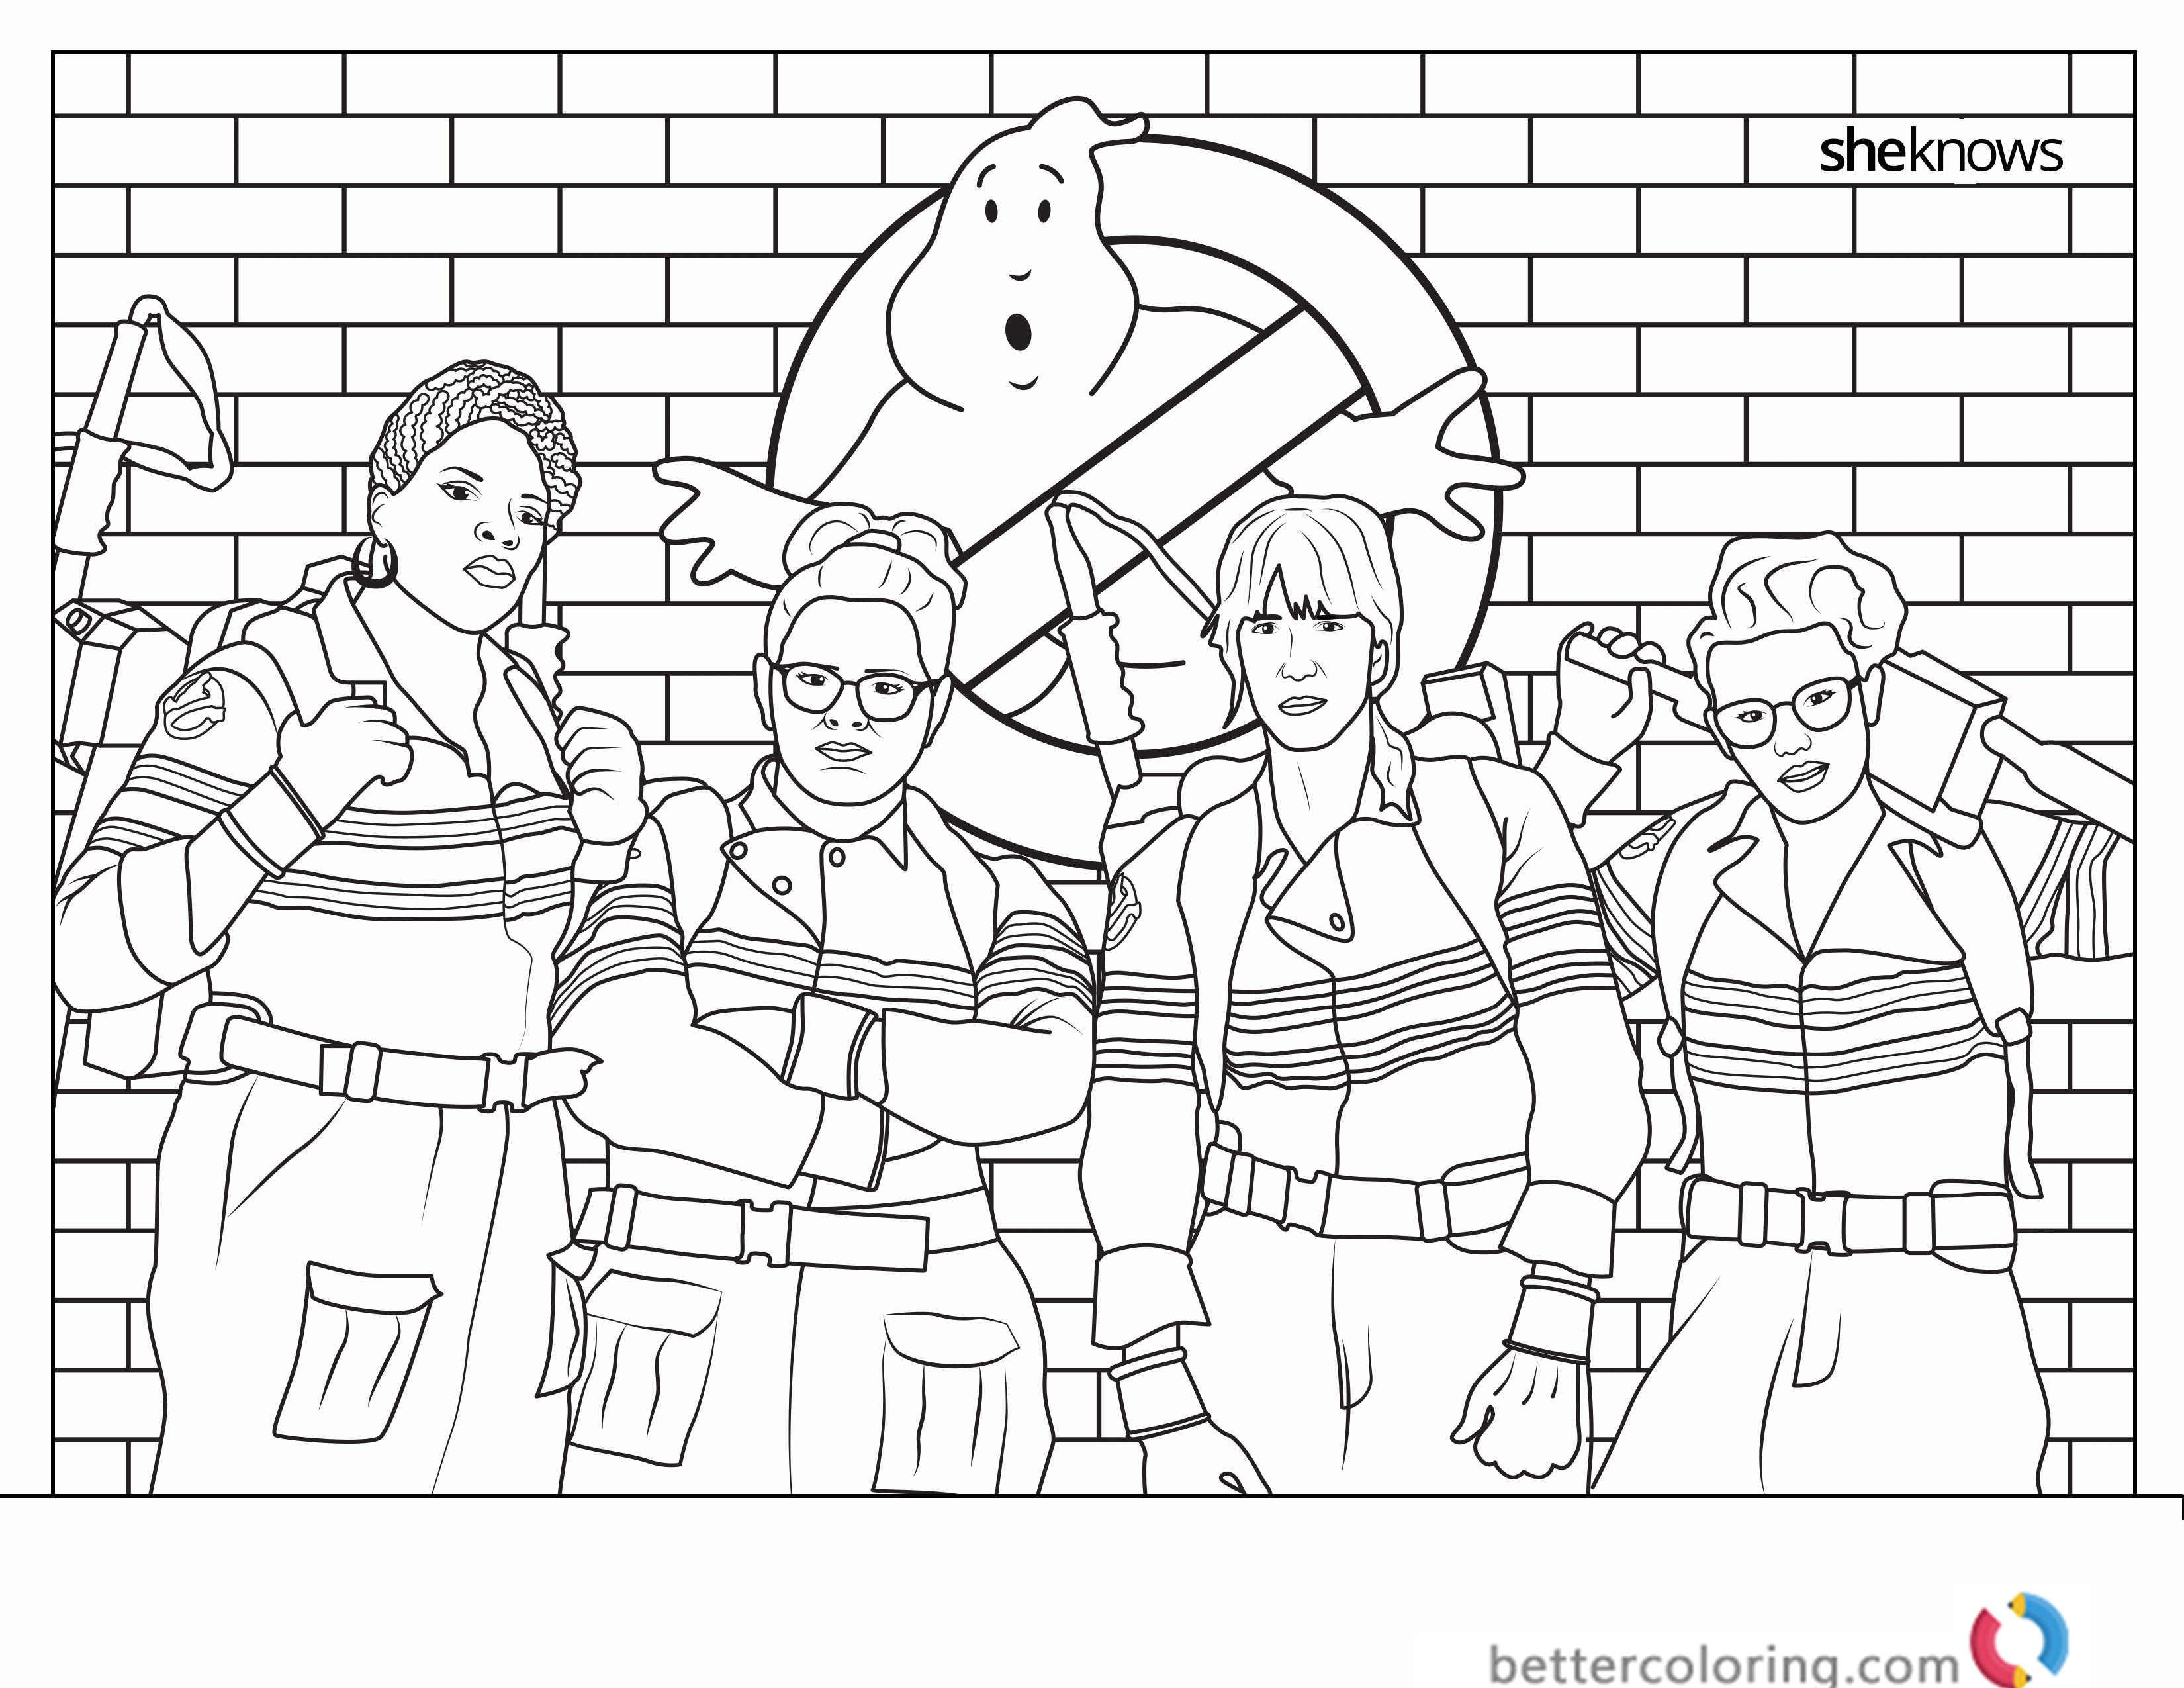 Ghostbusters Coloring Pages Photo 27 Coloring Pages Jesus Coloring Pages Sports Coloring Pages